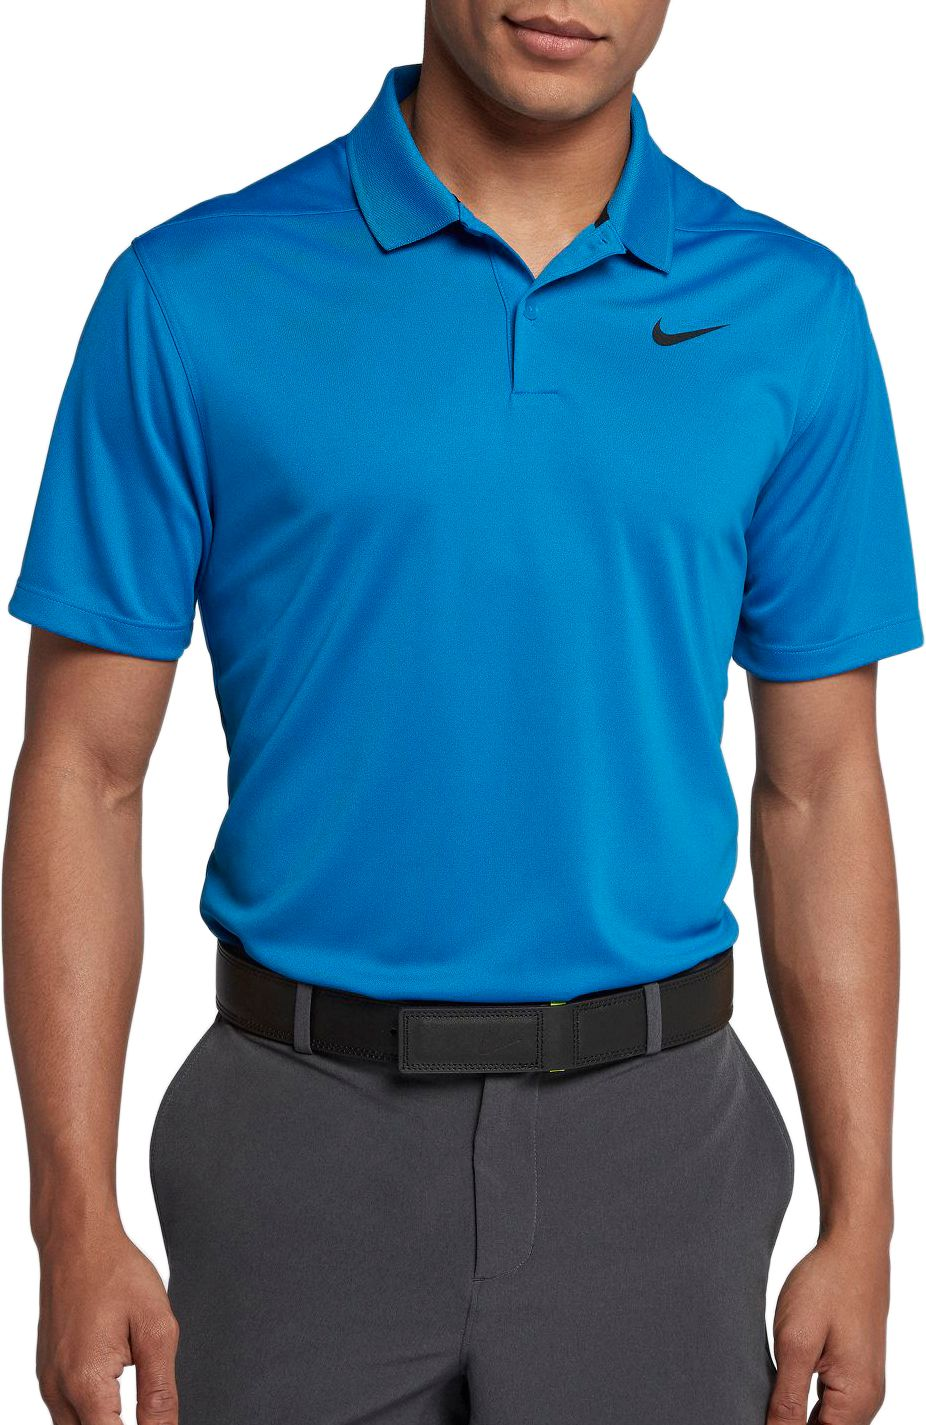 a217a8be Nike Men's Solid Dry Victory Golf Polo, Size: Small, White ...